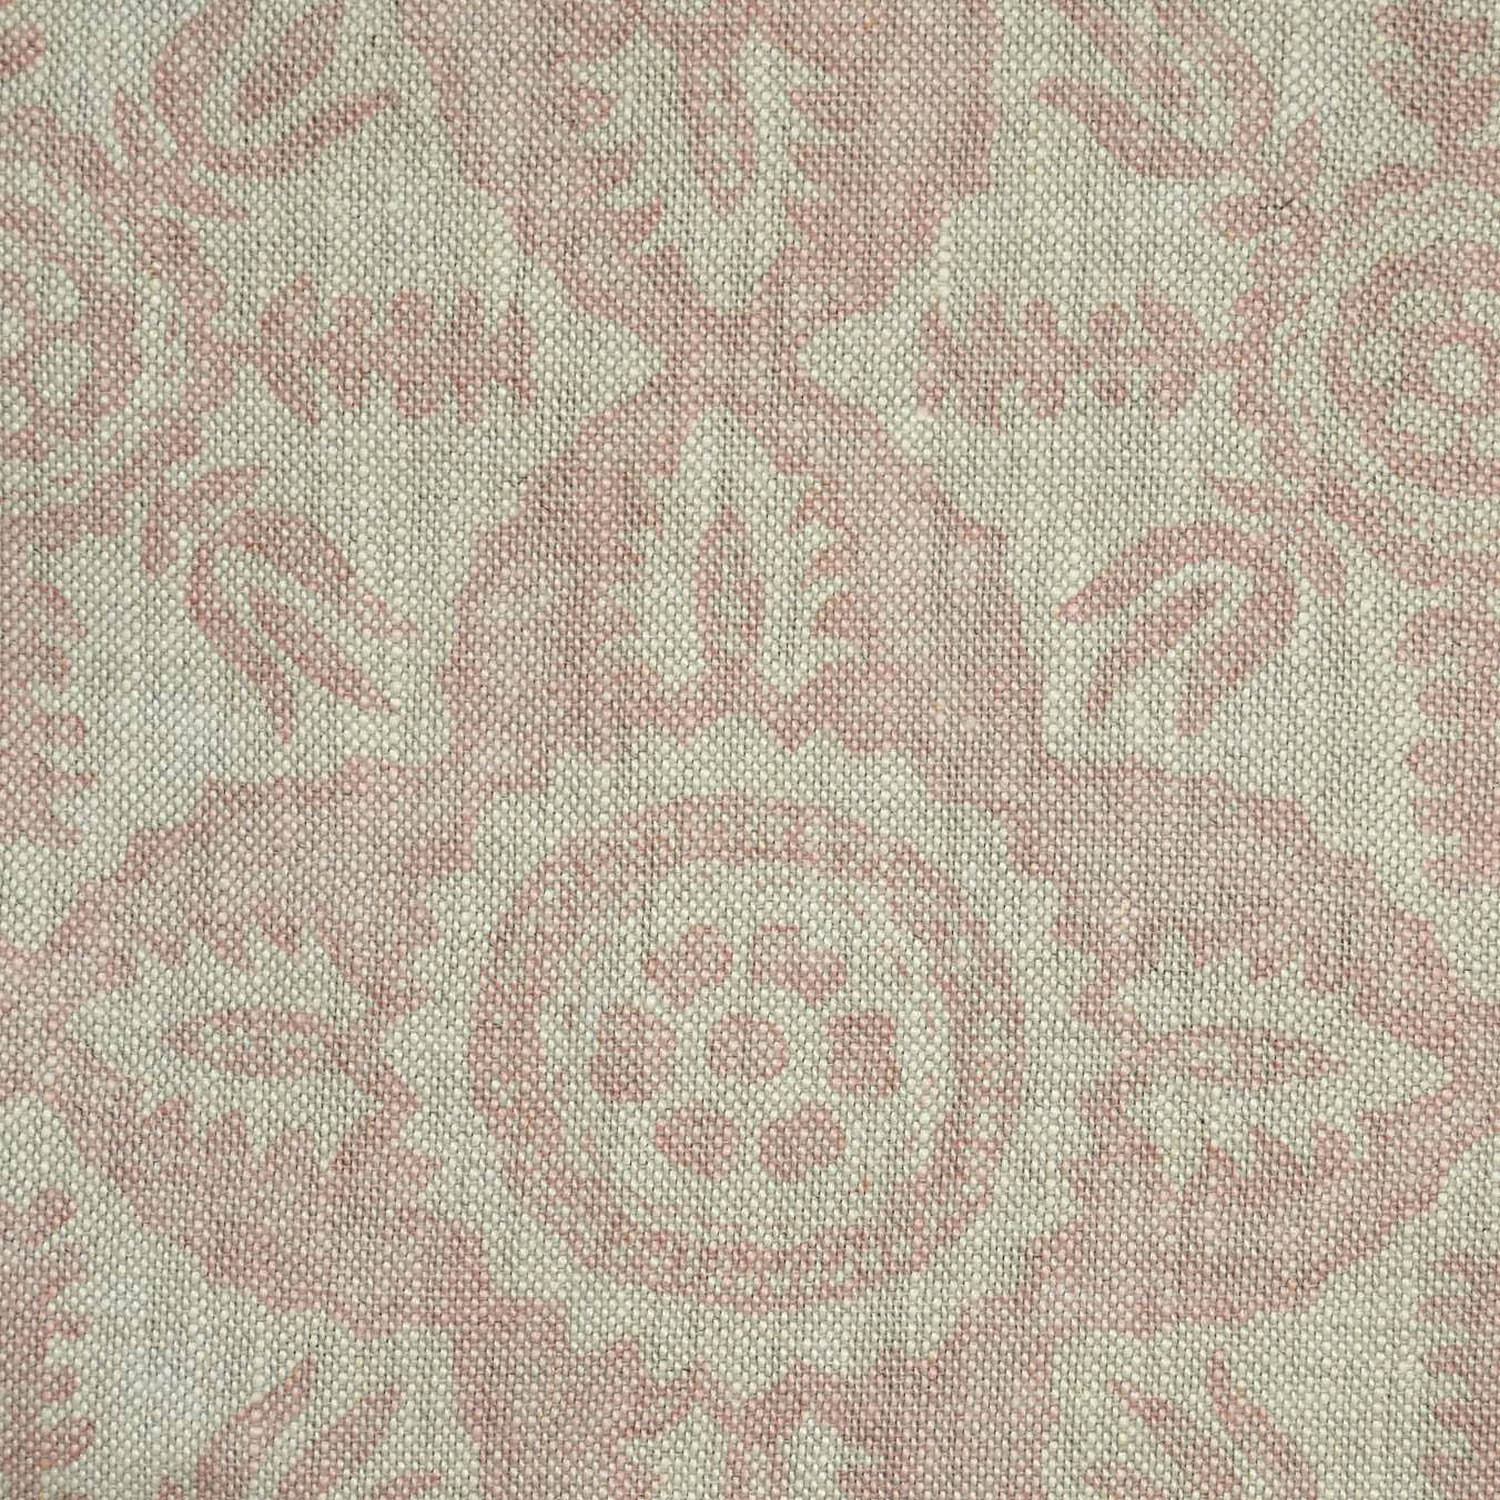 <p><strong>ROSSMORE</strong>pink 7100-04<a href=/collection-2/rossmore-pink-7100-04>More →</a></p>